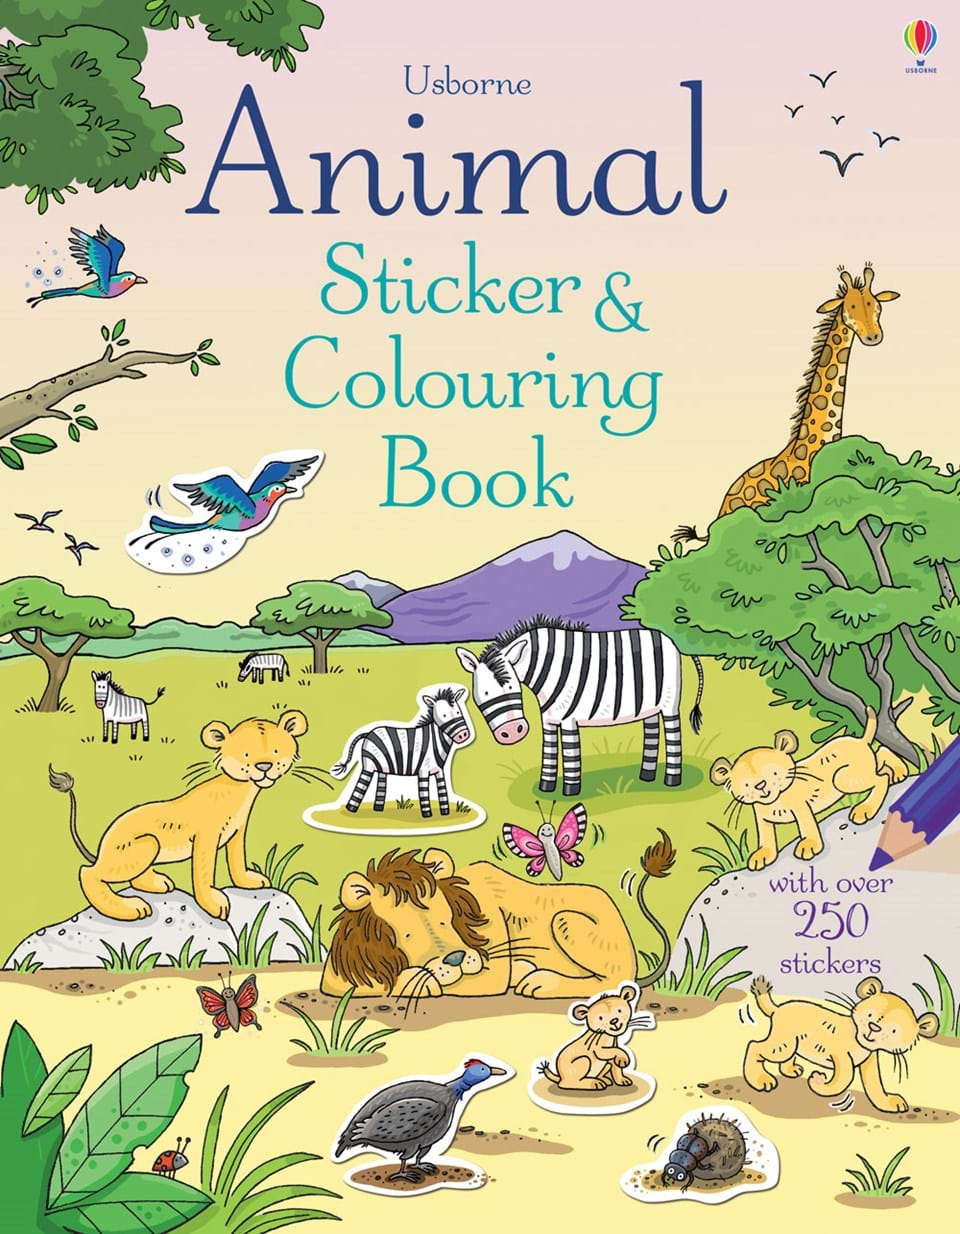 Animal Colouring Book : ?Animal sticker and colouring book? at Usborne Children?s Books